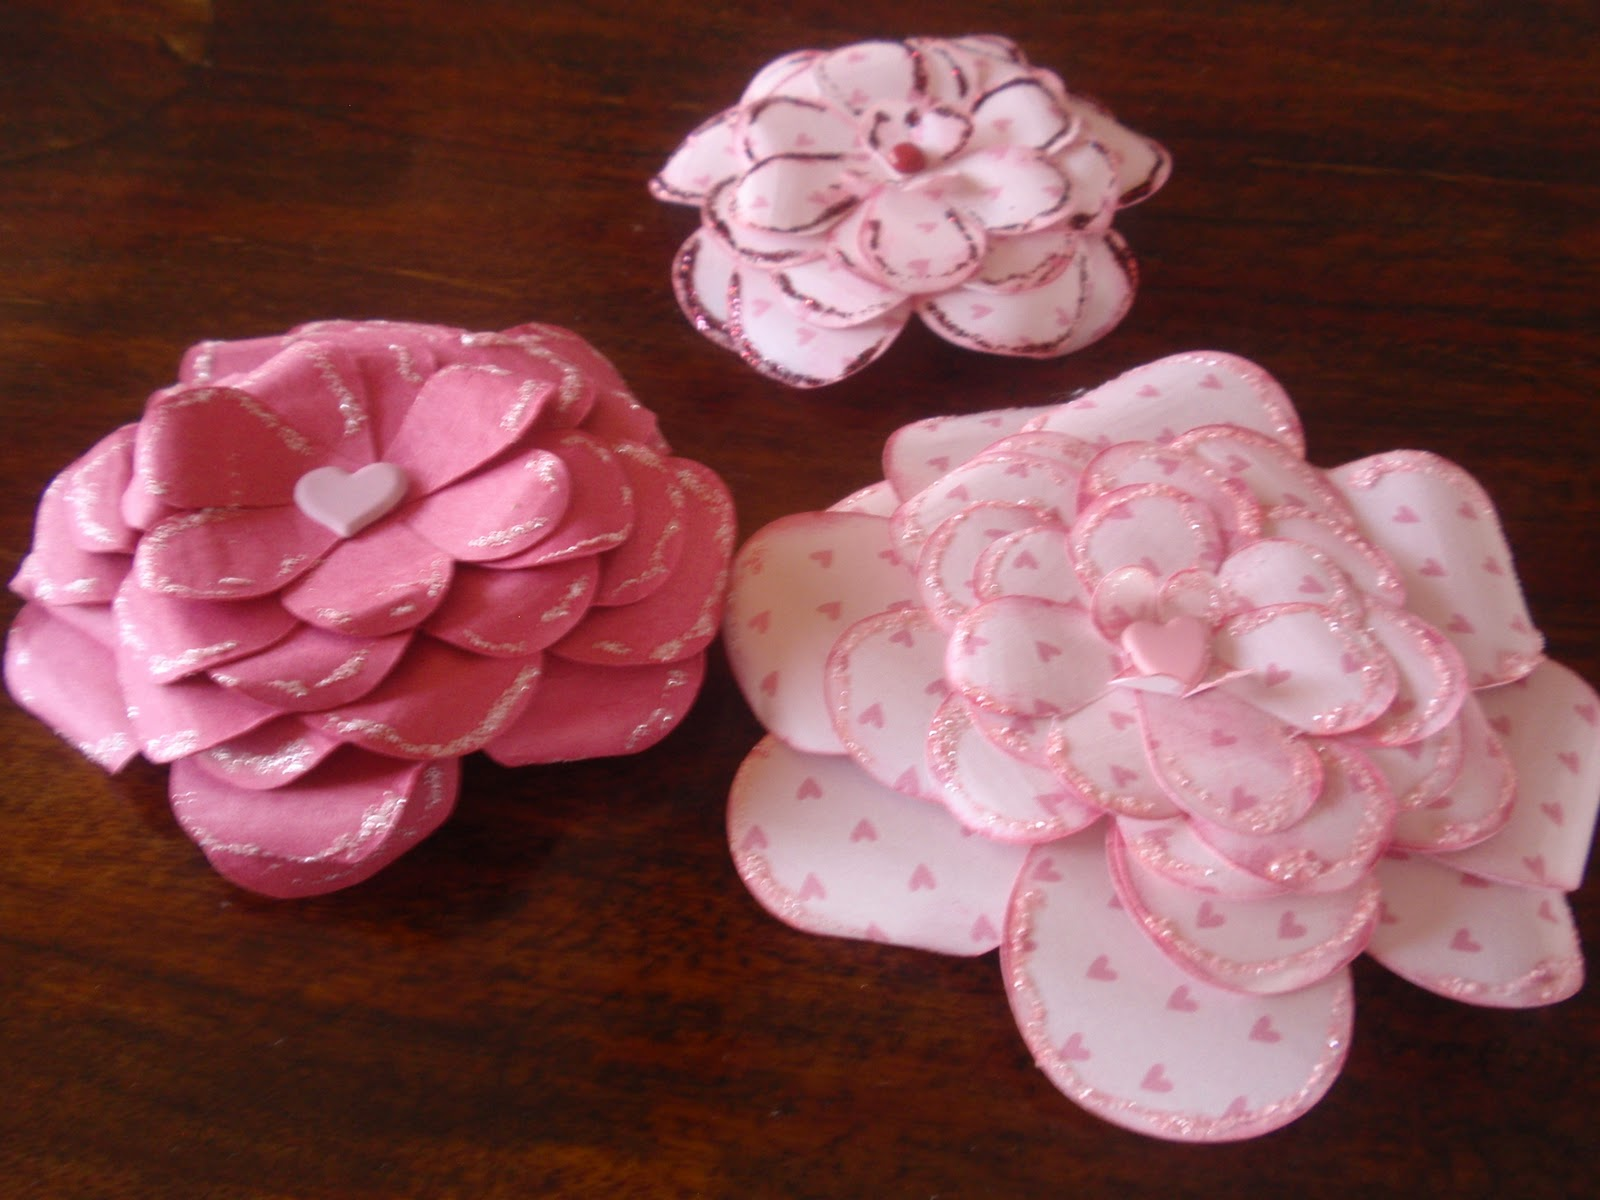 Sunshine Memories How To Make Pretty Paper Roses Out Of Heart Shapes